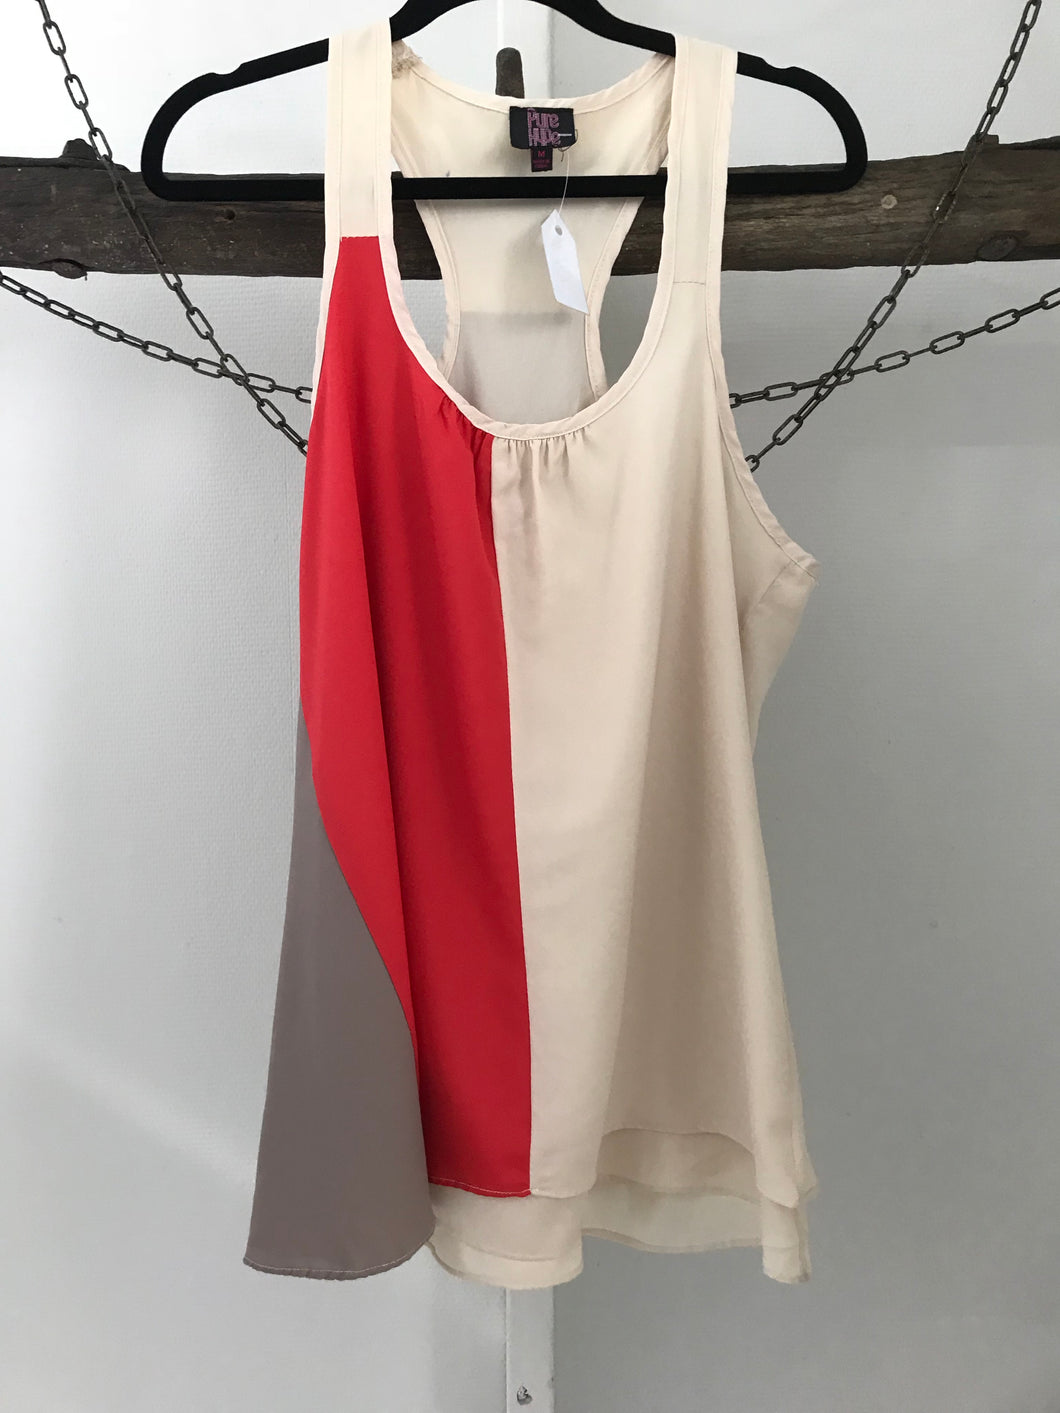 Pure Hype orange/cream swing sleeveless top Size M (estimated 10)